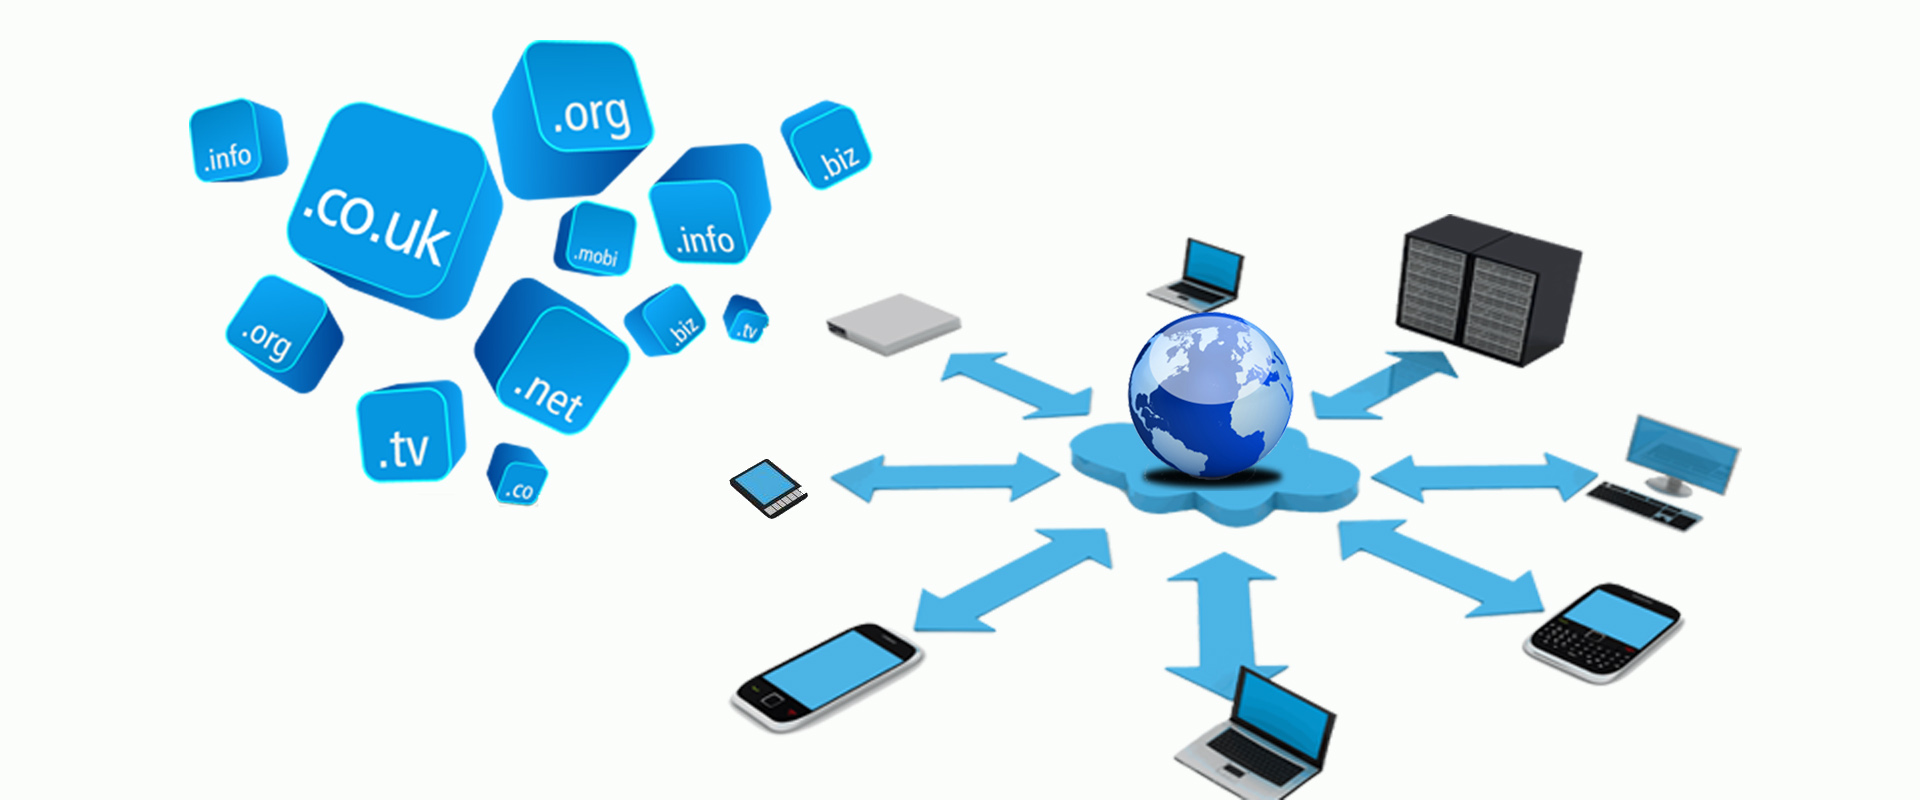 Web Hosting Services in noida | Web Hosting Company